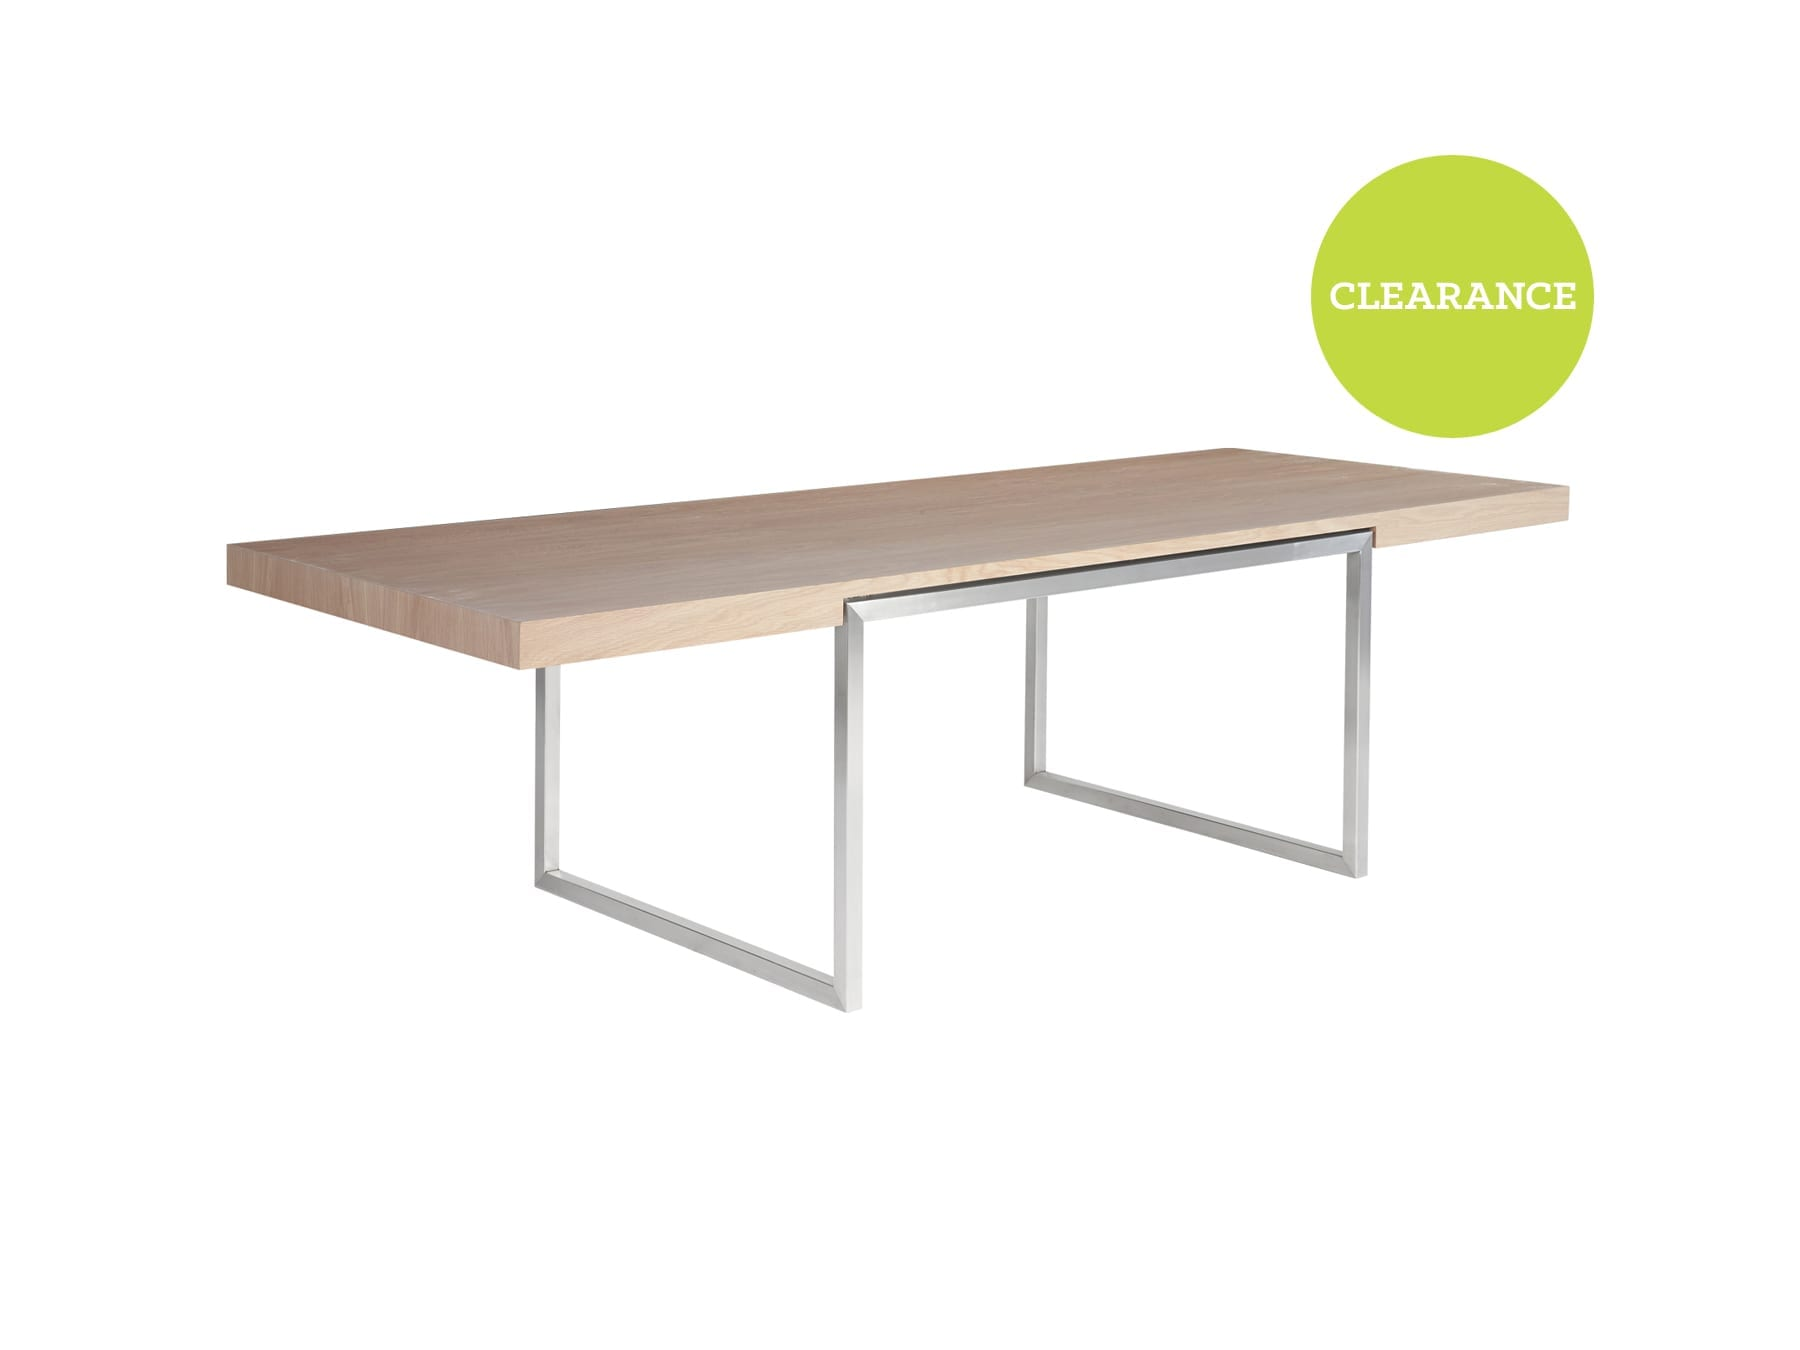 Evo Dimarco Dining Table #2 - floor model